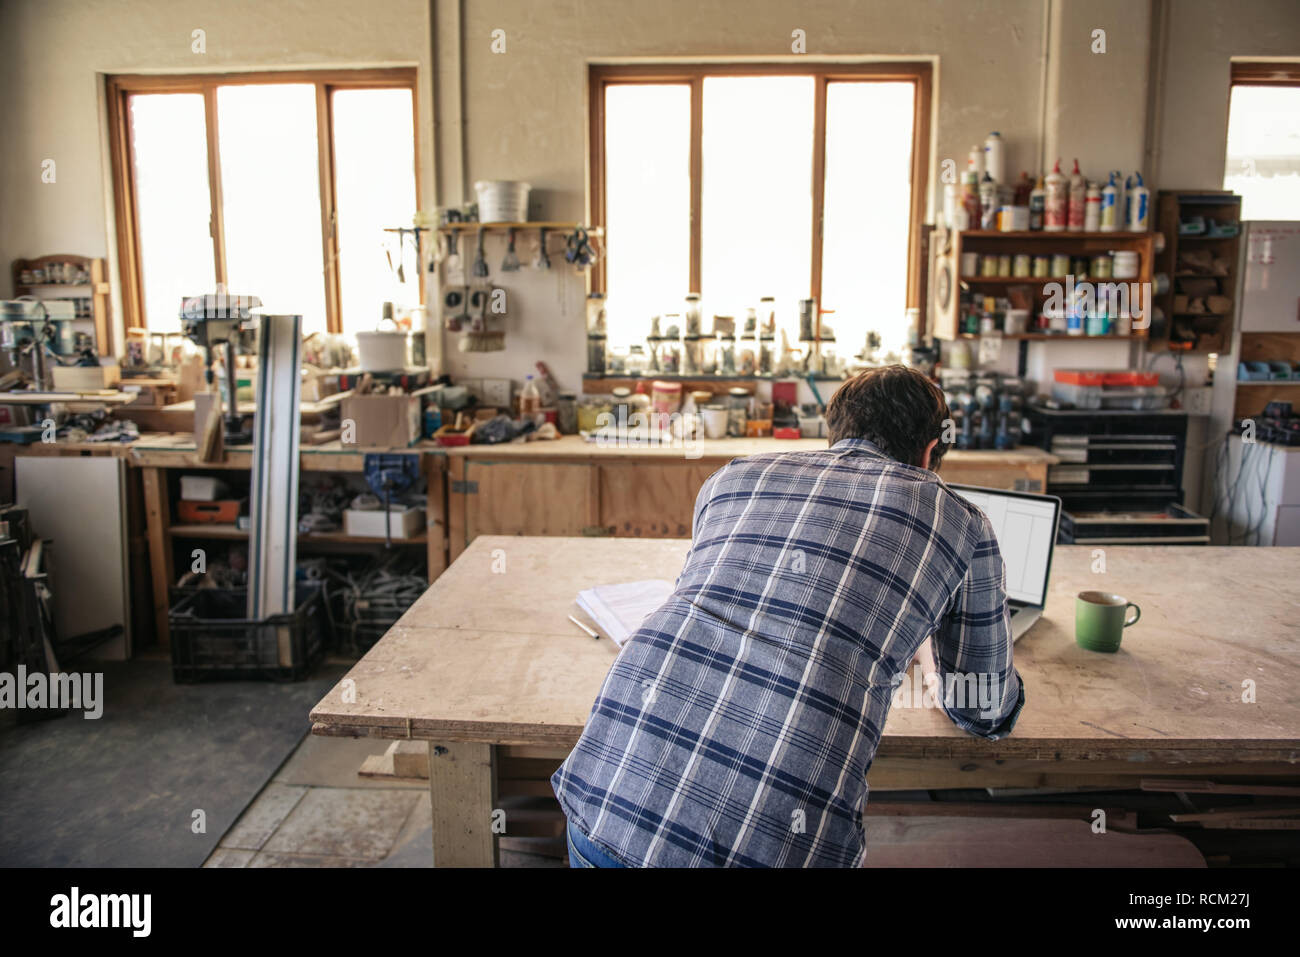 Woodworker using a laptop at his workshop bench - Stock Image